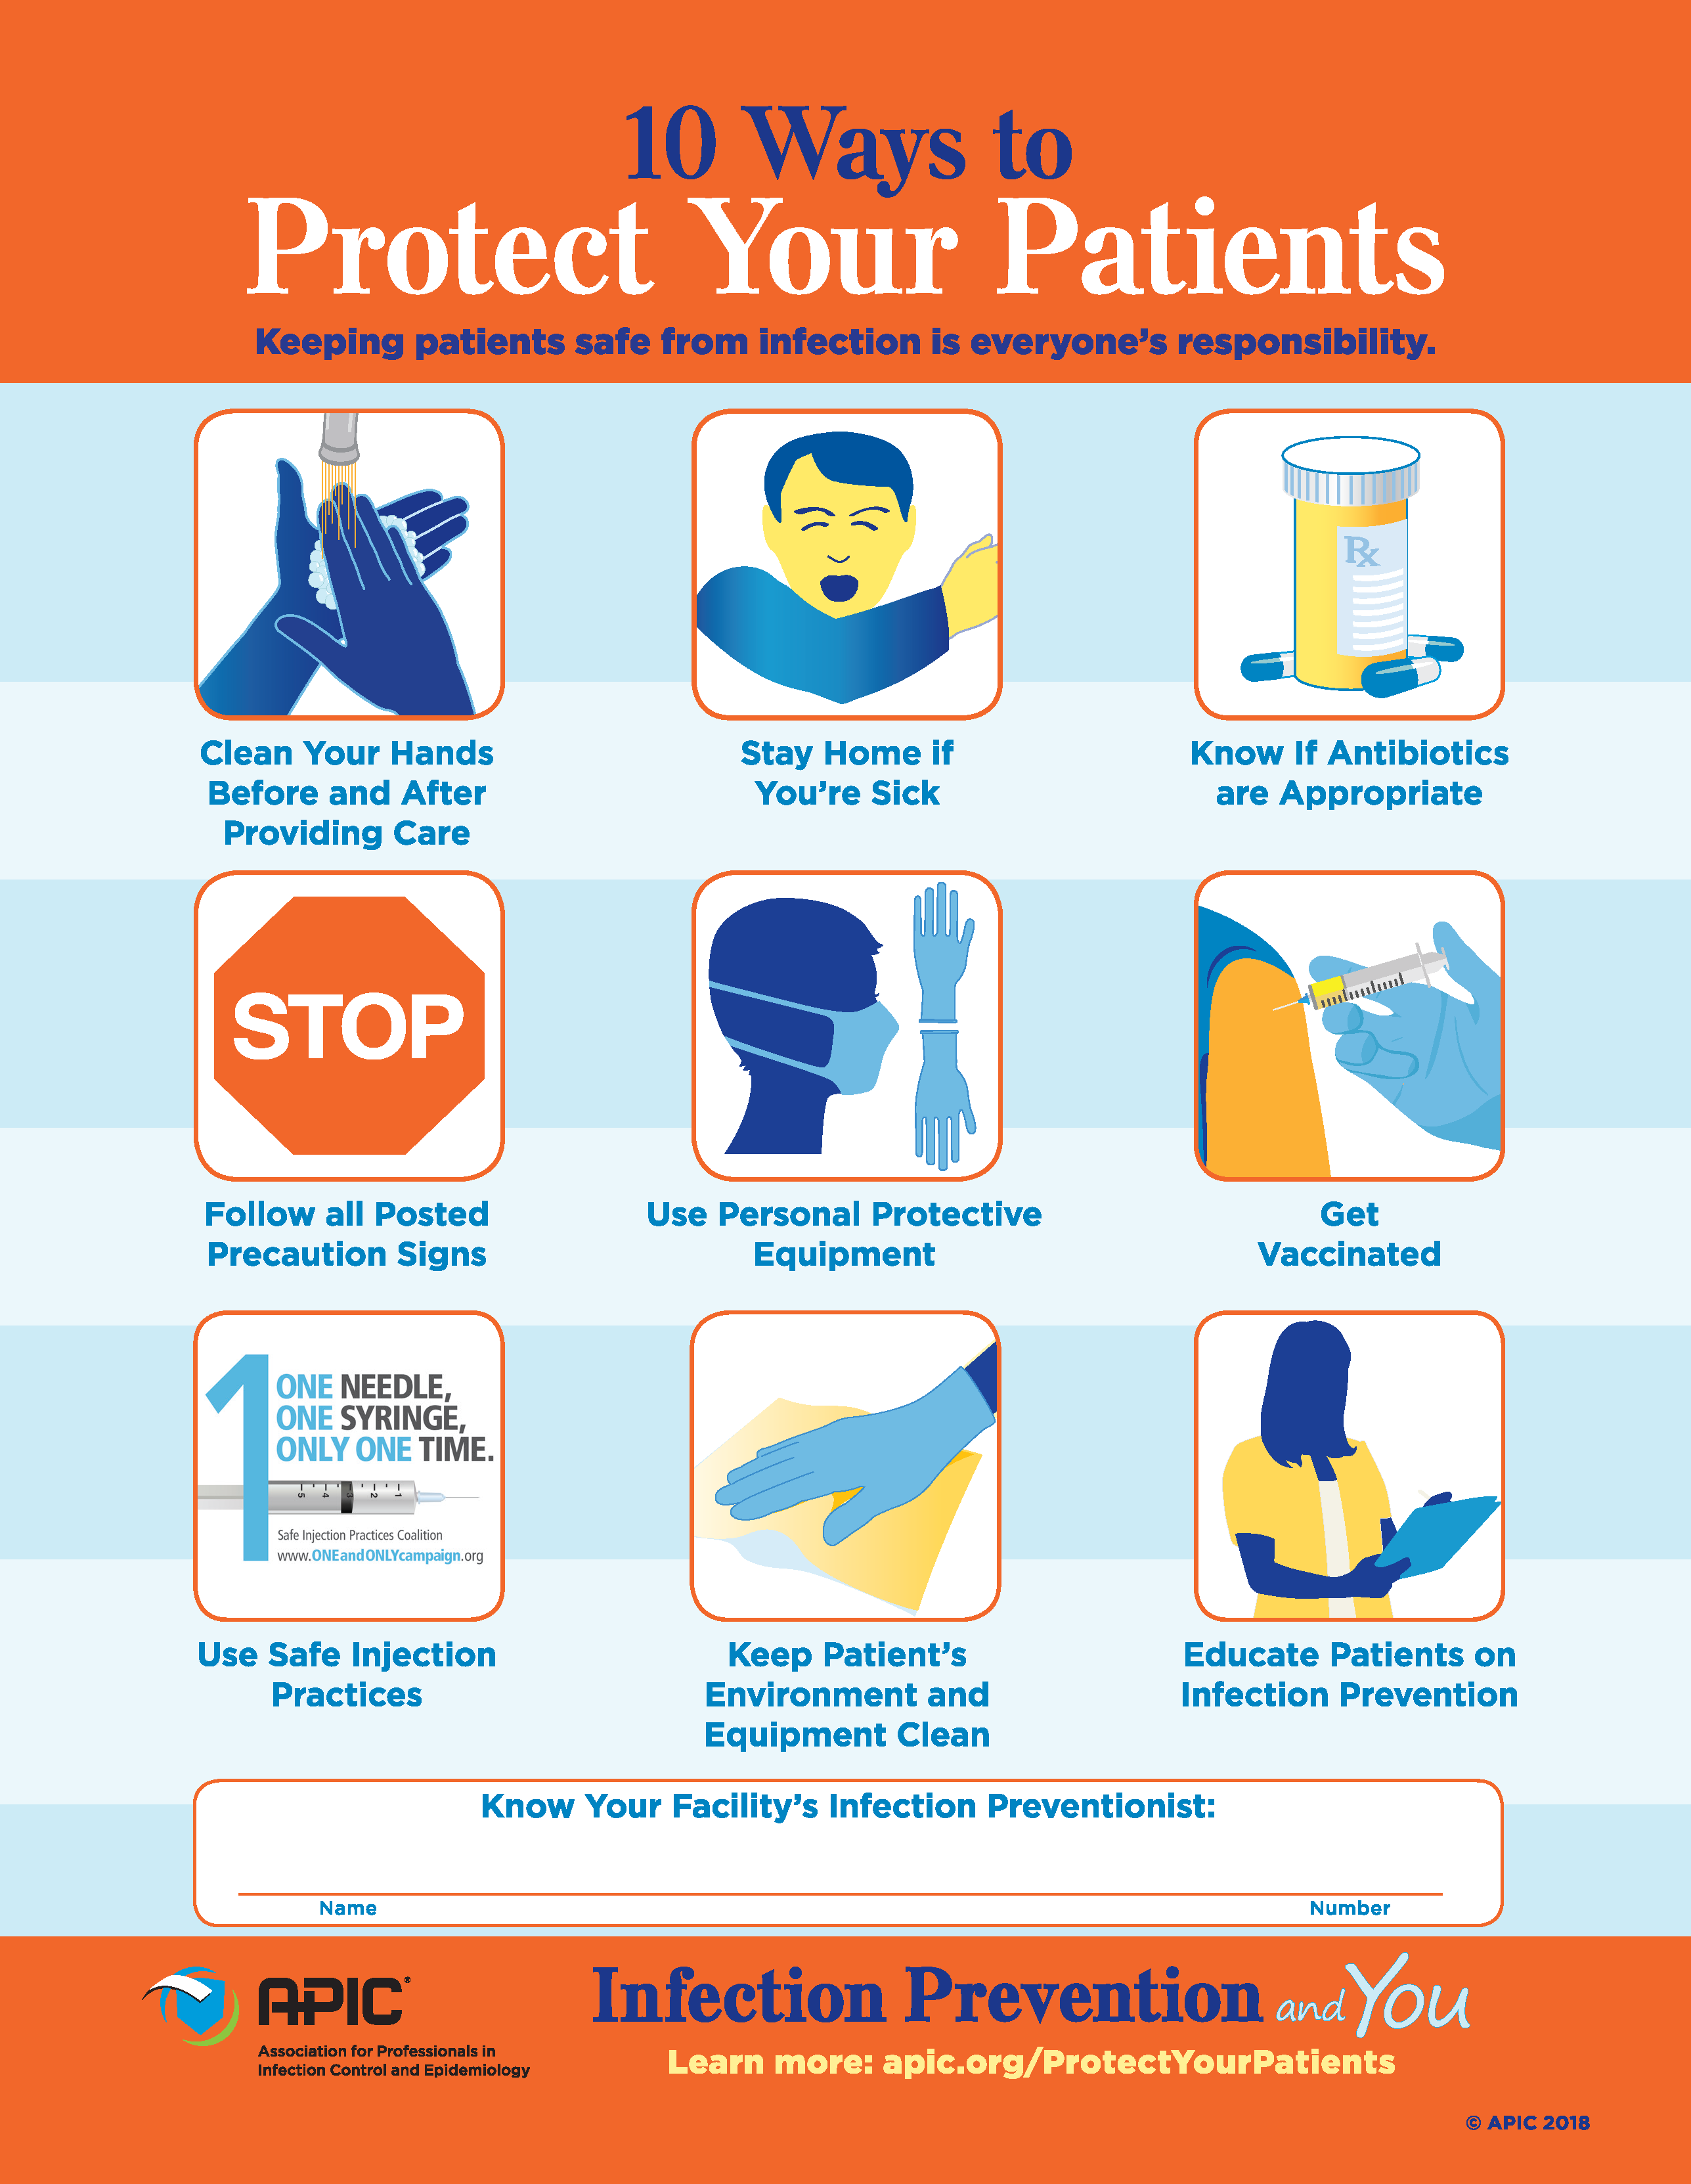 Pinned for the standard precautions PPE (open the link and